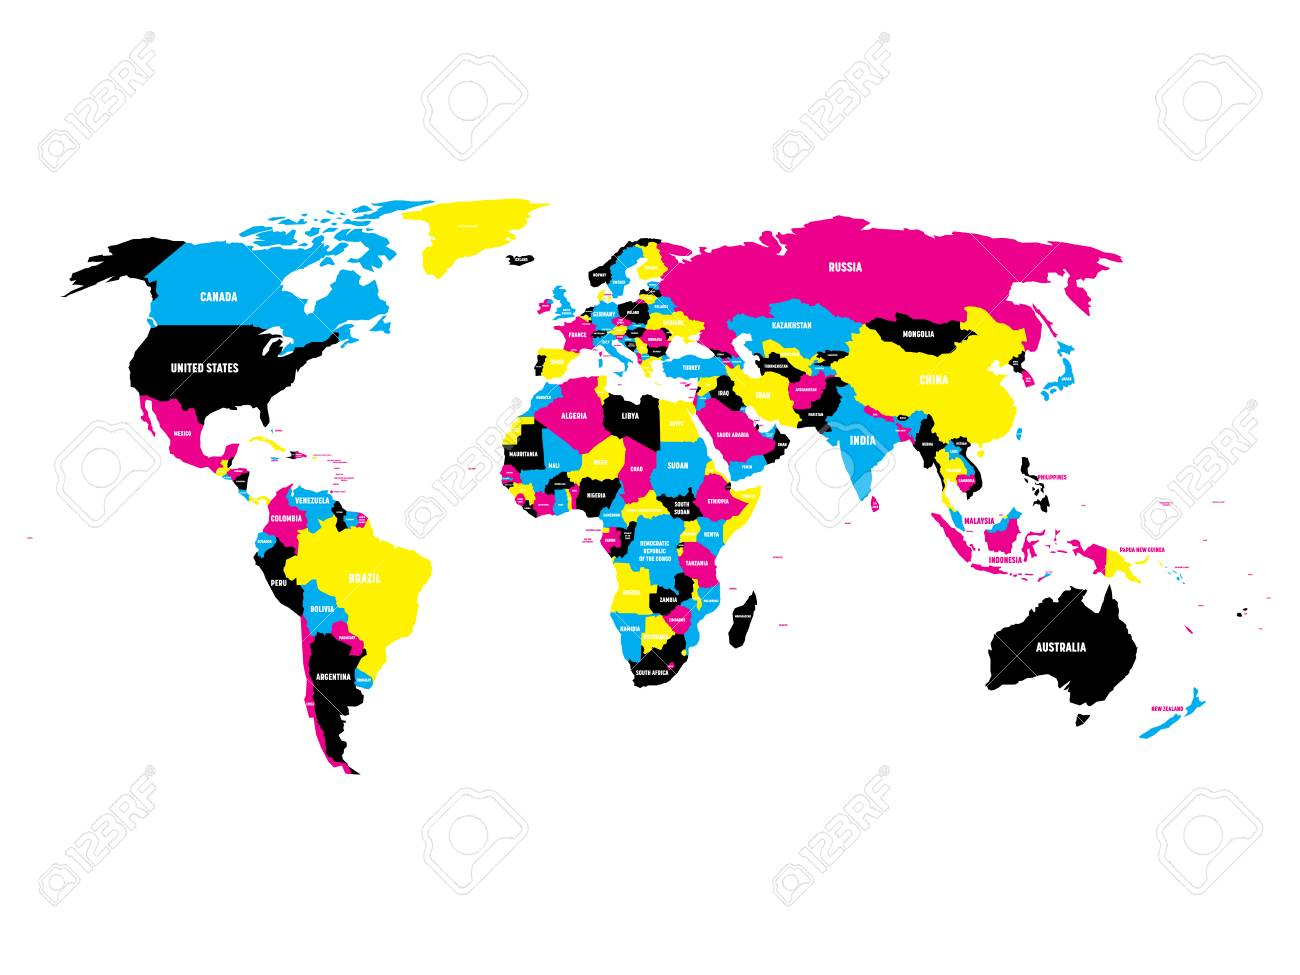 Political Map Of Canada No Color Com Nombres Political Map Of World In CMYK Colors With Country Name Labels